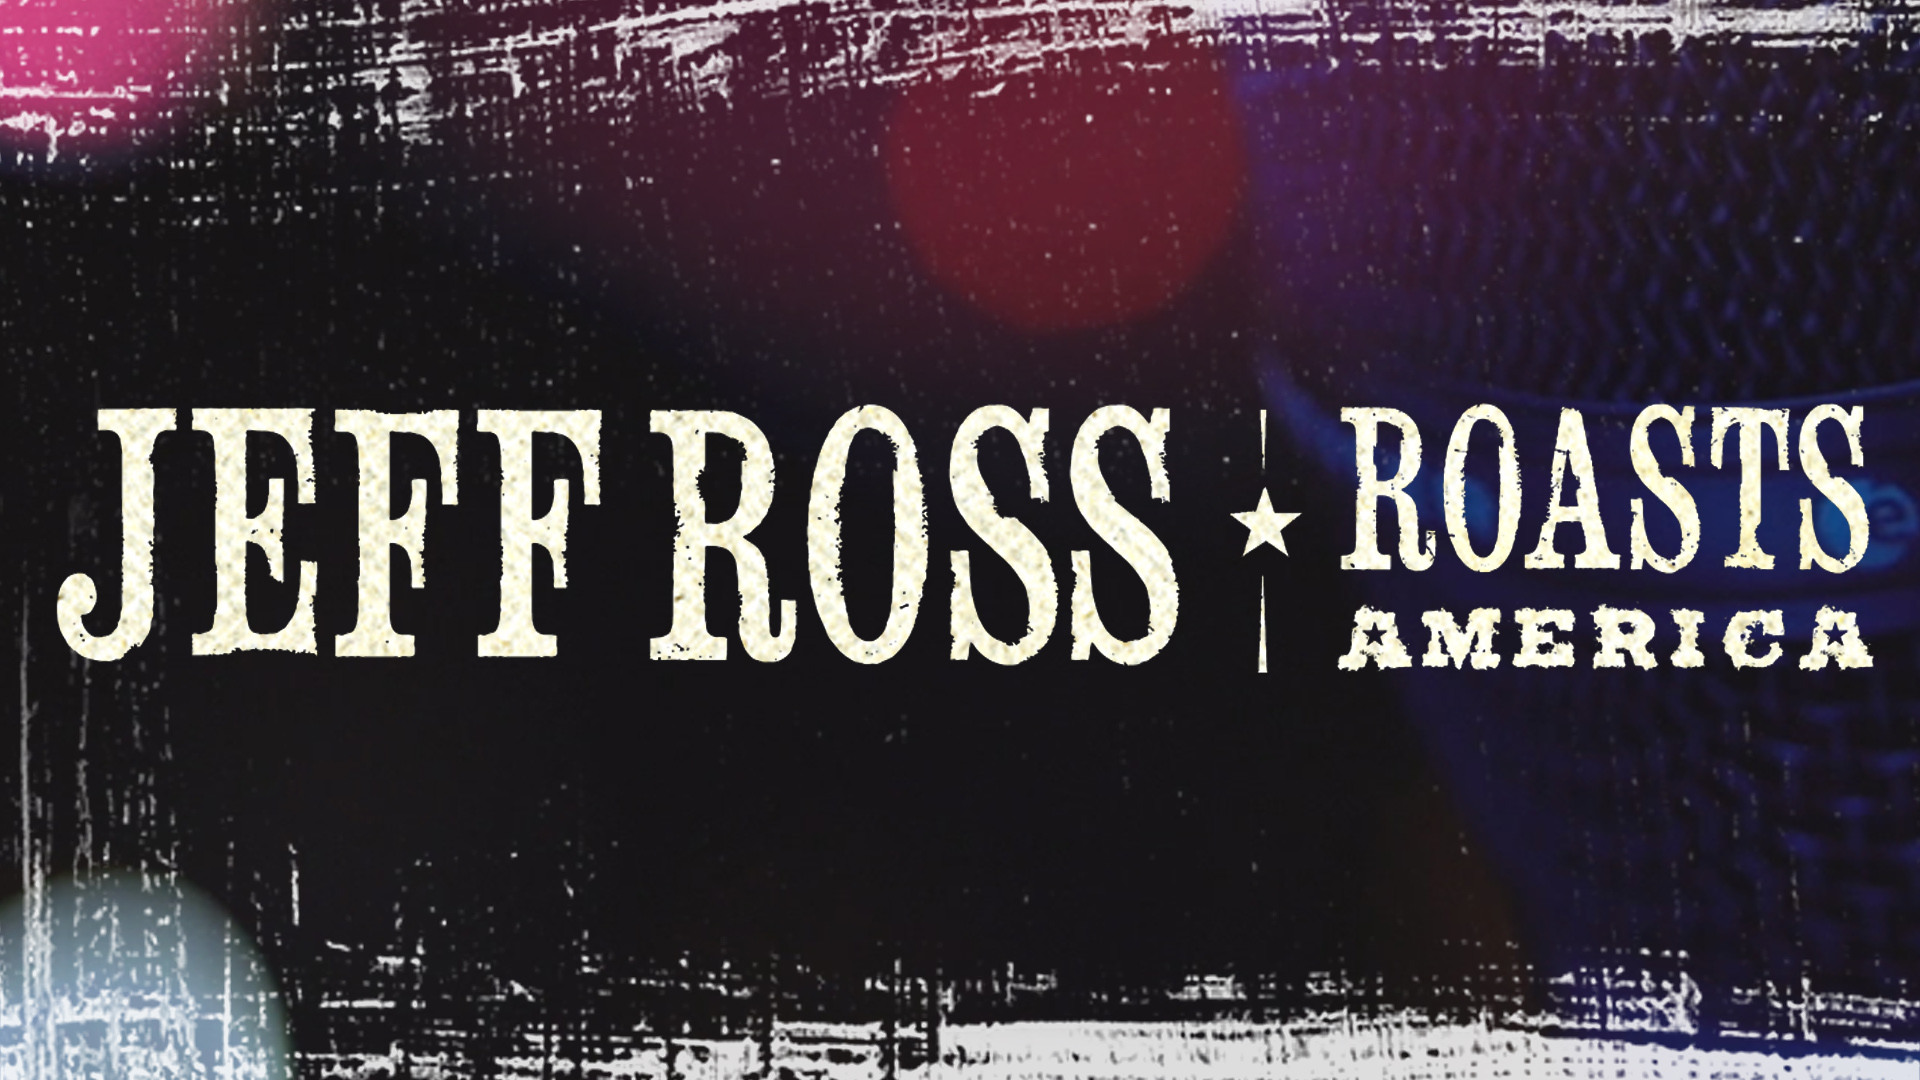 JEFF ROSS - ROASTS AMERICA